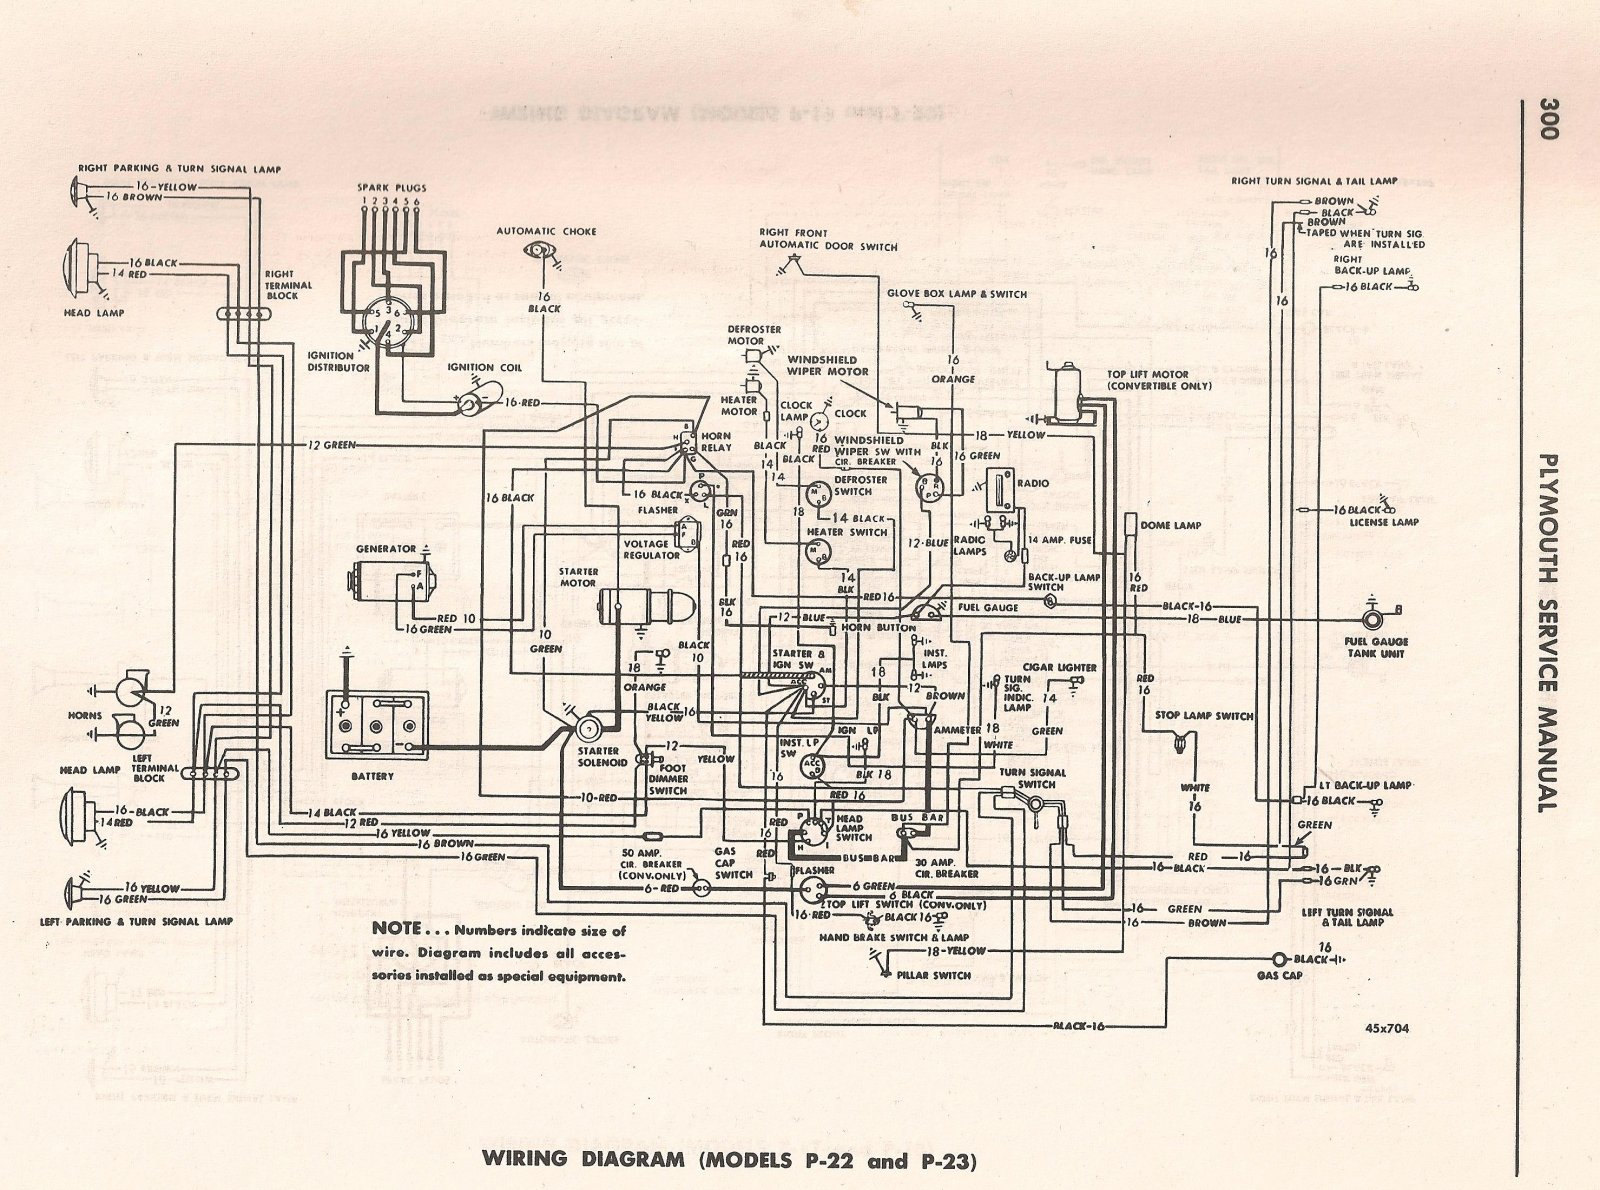 hight resolution of wiring diagram plymouth cranbrook 1953 1947 plymouth generation 4 wiring diagram chevy generation 4 wiring diagram